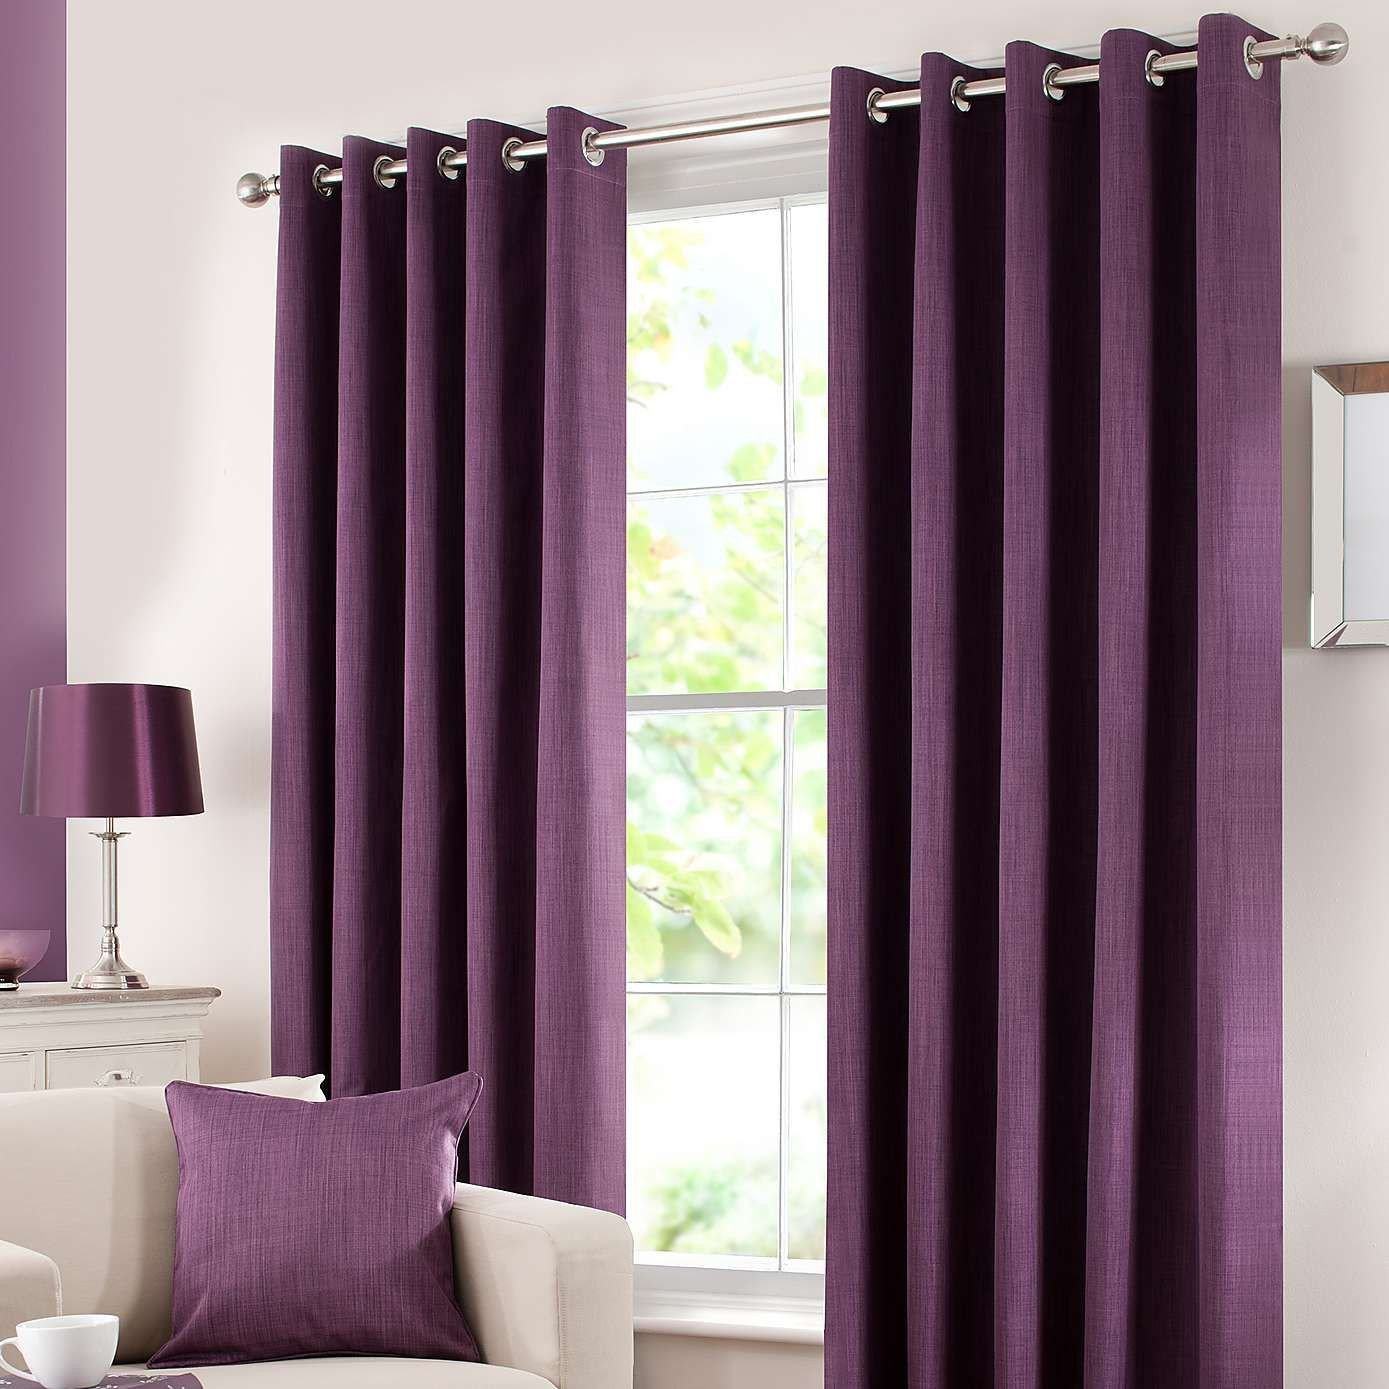 Plum Curtains for Bedroom Awesome Aubergine solar Blackout Eyelet Curtains Dunelm